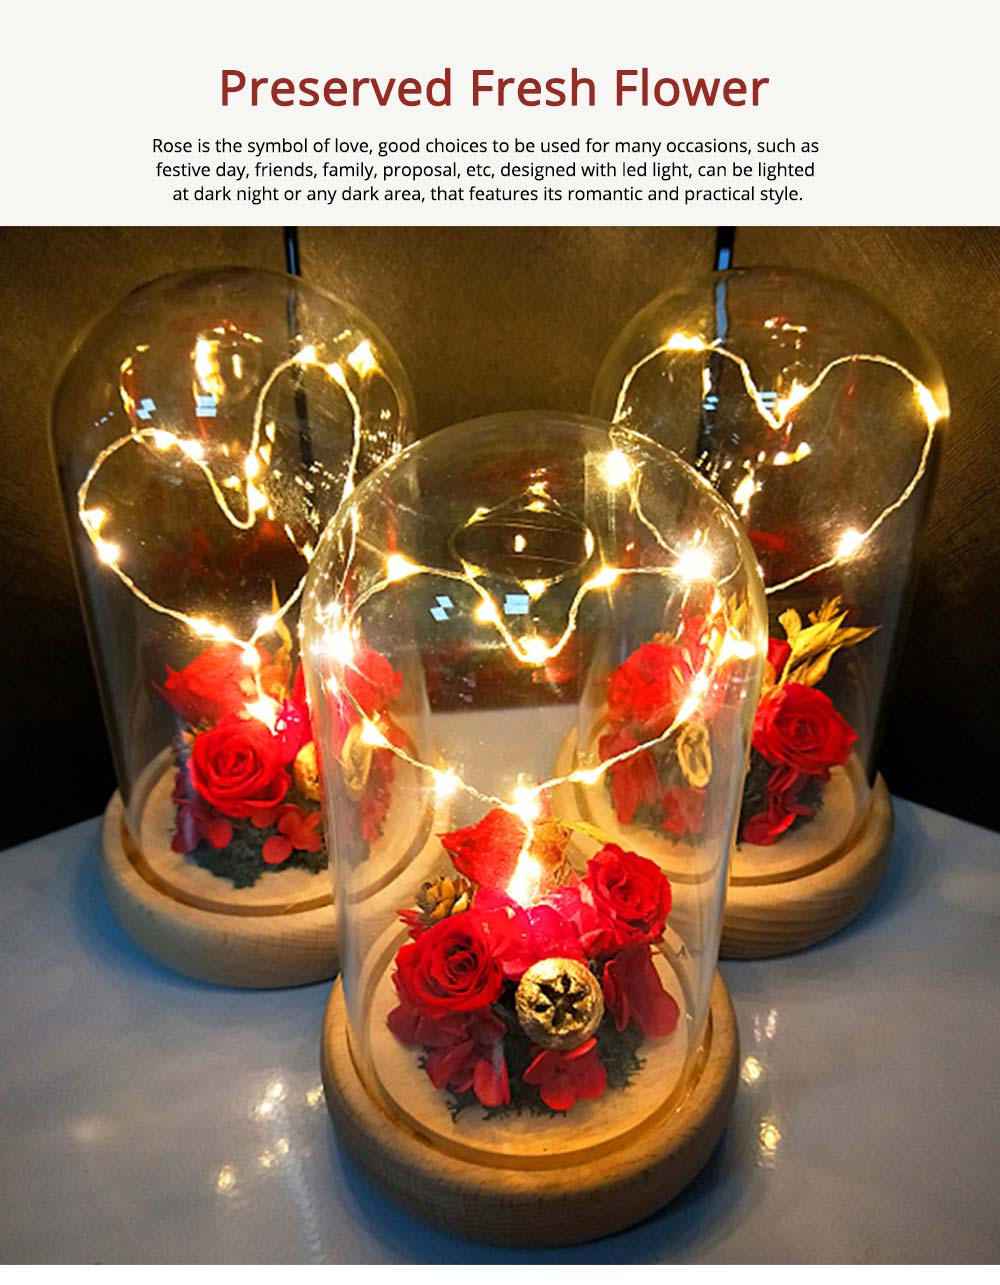 Imitation Rose Preserved Fresh Flower with LED Light Glass Cover, Great Valentine's Day Gift 0